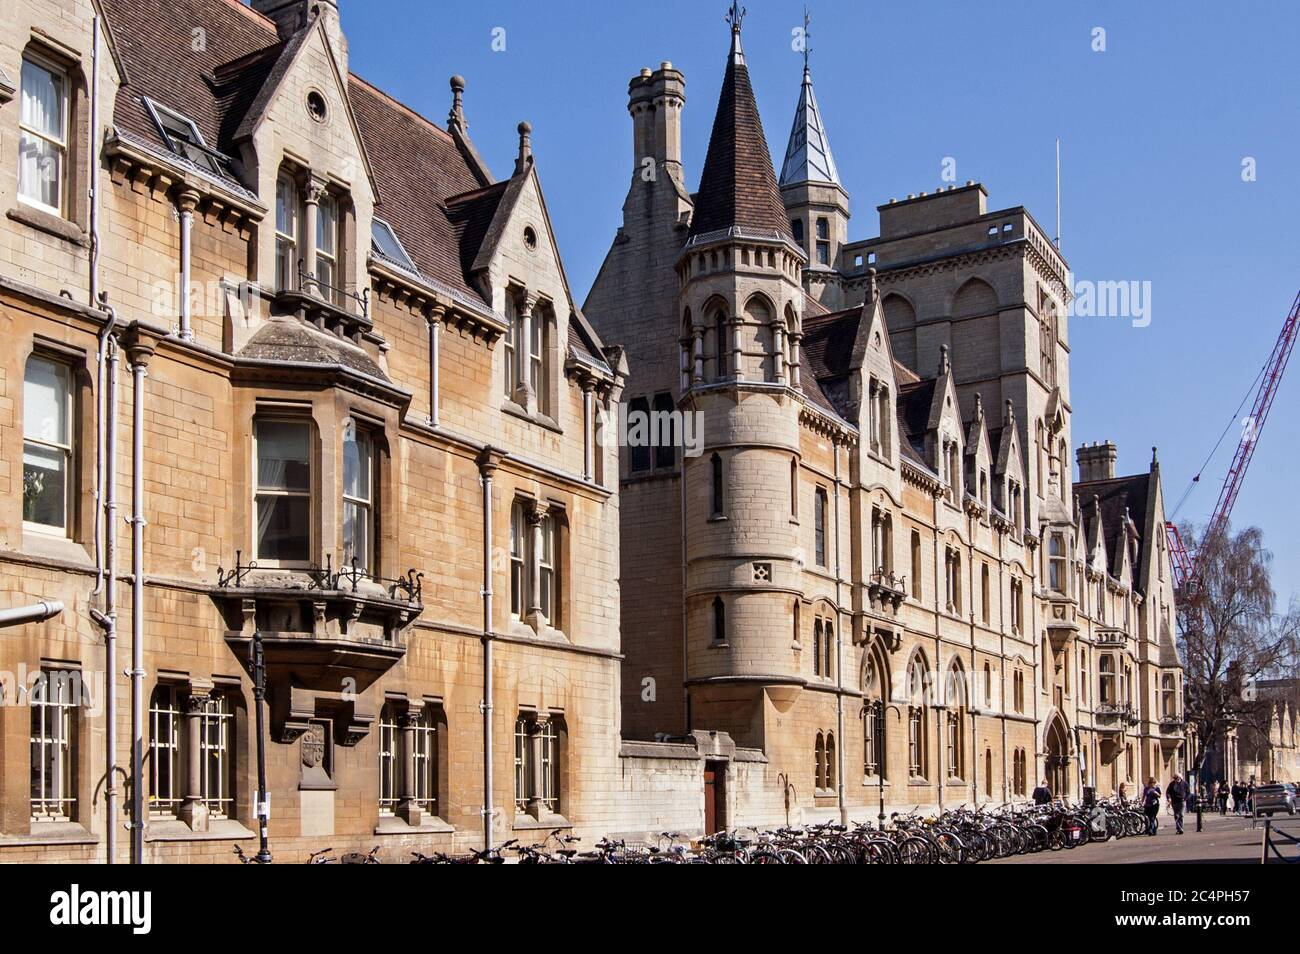 Oxford, UK - March 26, 2012:  View from Broad Street of Balliol College in the centre of Oxford, UK. Stock Photo